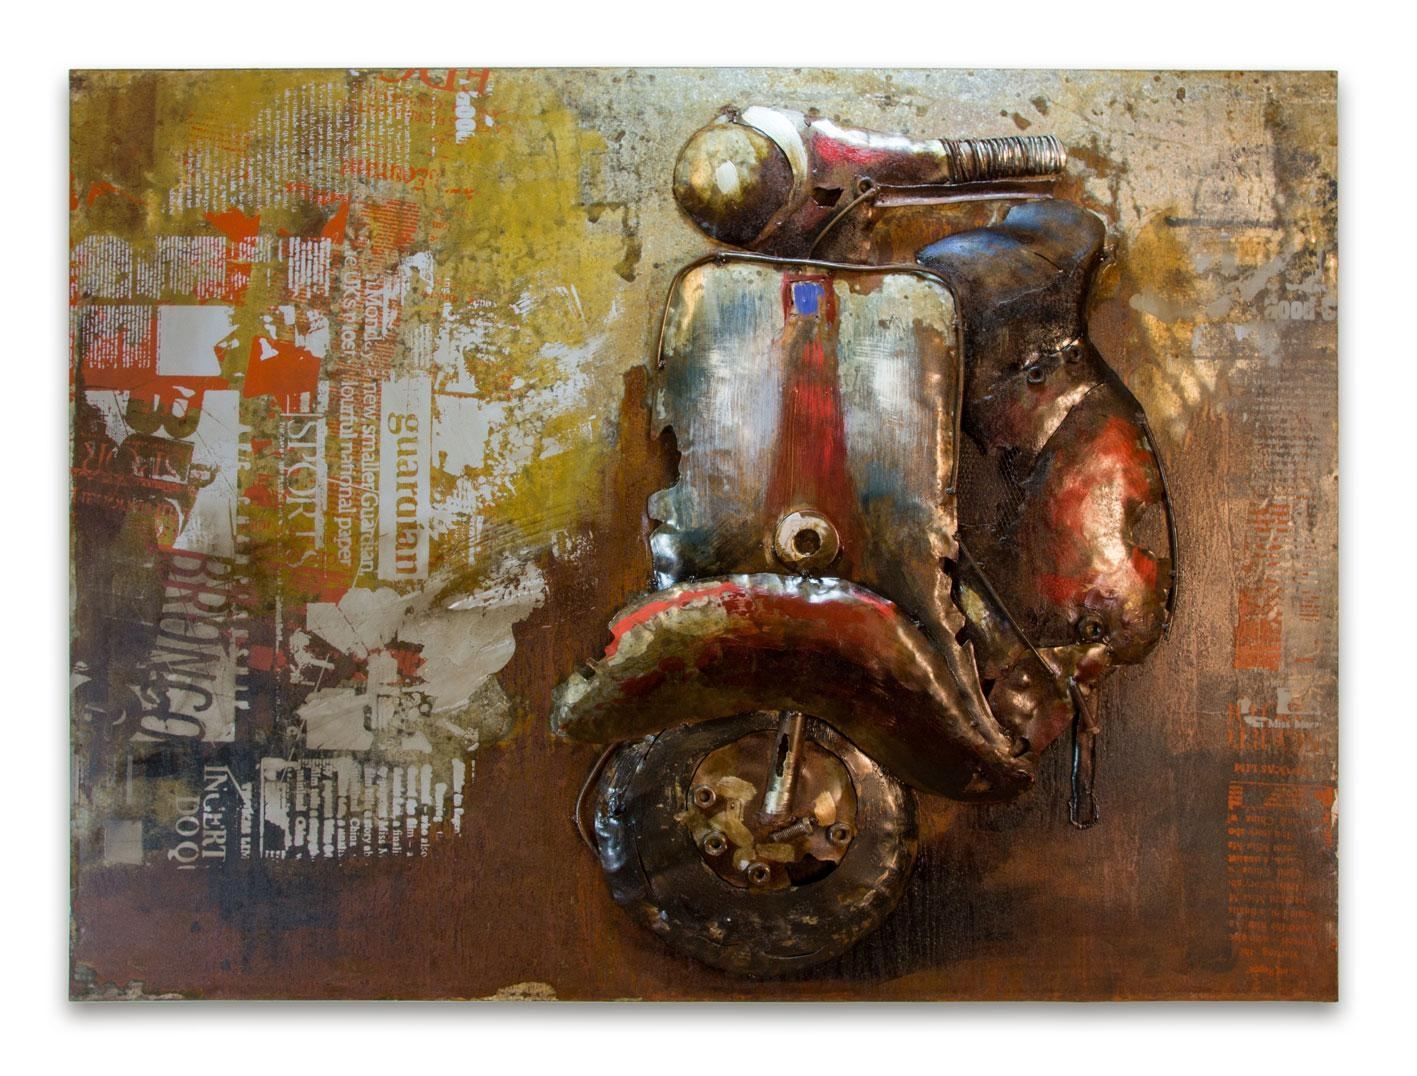 Wall Art Decor: Scooter Crafted Italian Metal Wall Art Handmade Throughout Funky Metal Wall Art (View 8 of 20)